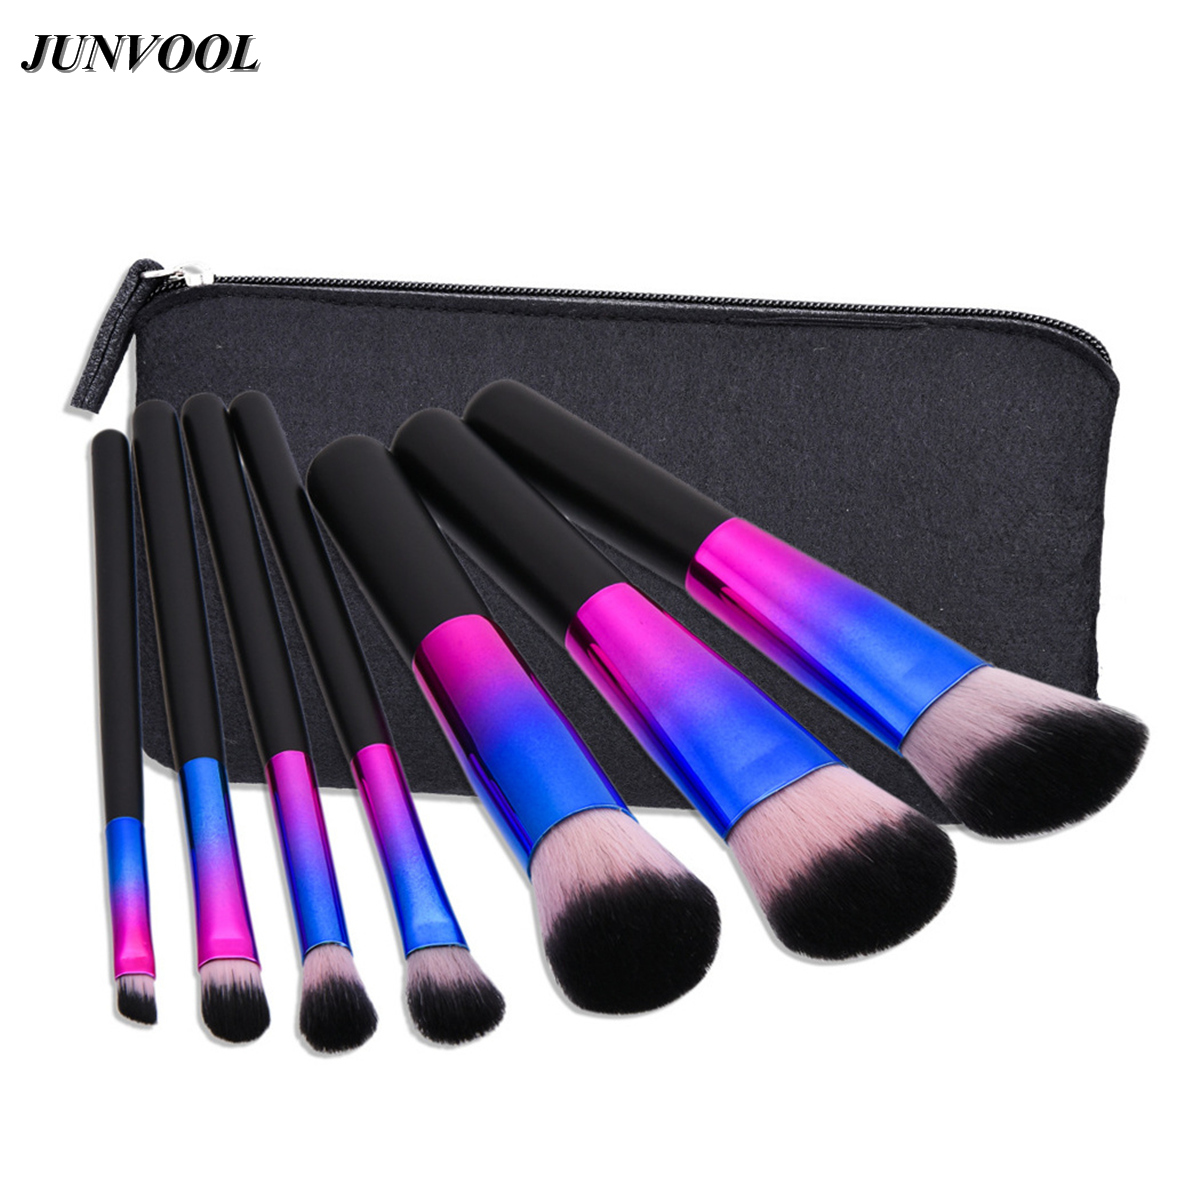 7pc Makeup Brush Set Dazzle Glitter New Colorful Pinceaux Maquillage Beautiful Powder Blush Eyeshadow Make Up Brushes with A Bag new colorful 7 pcs makeup brush set professional pinceaux maquillage beautiful powder blush eyeshadow make up brushes with bag